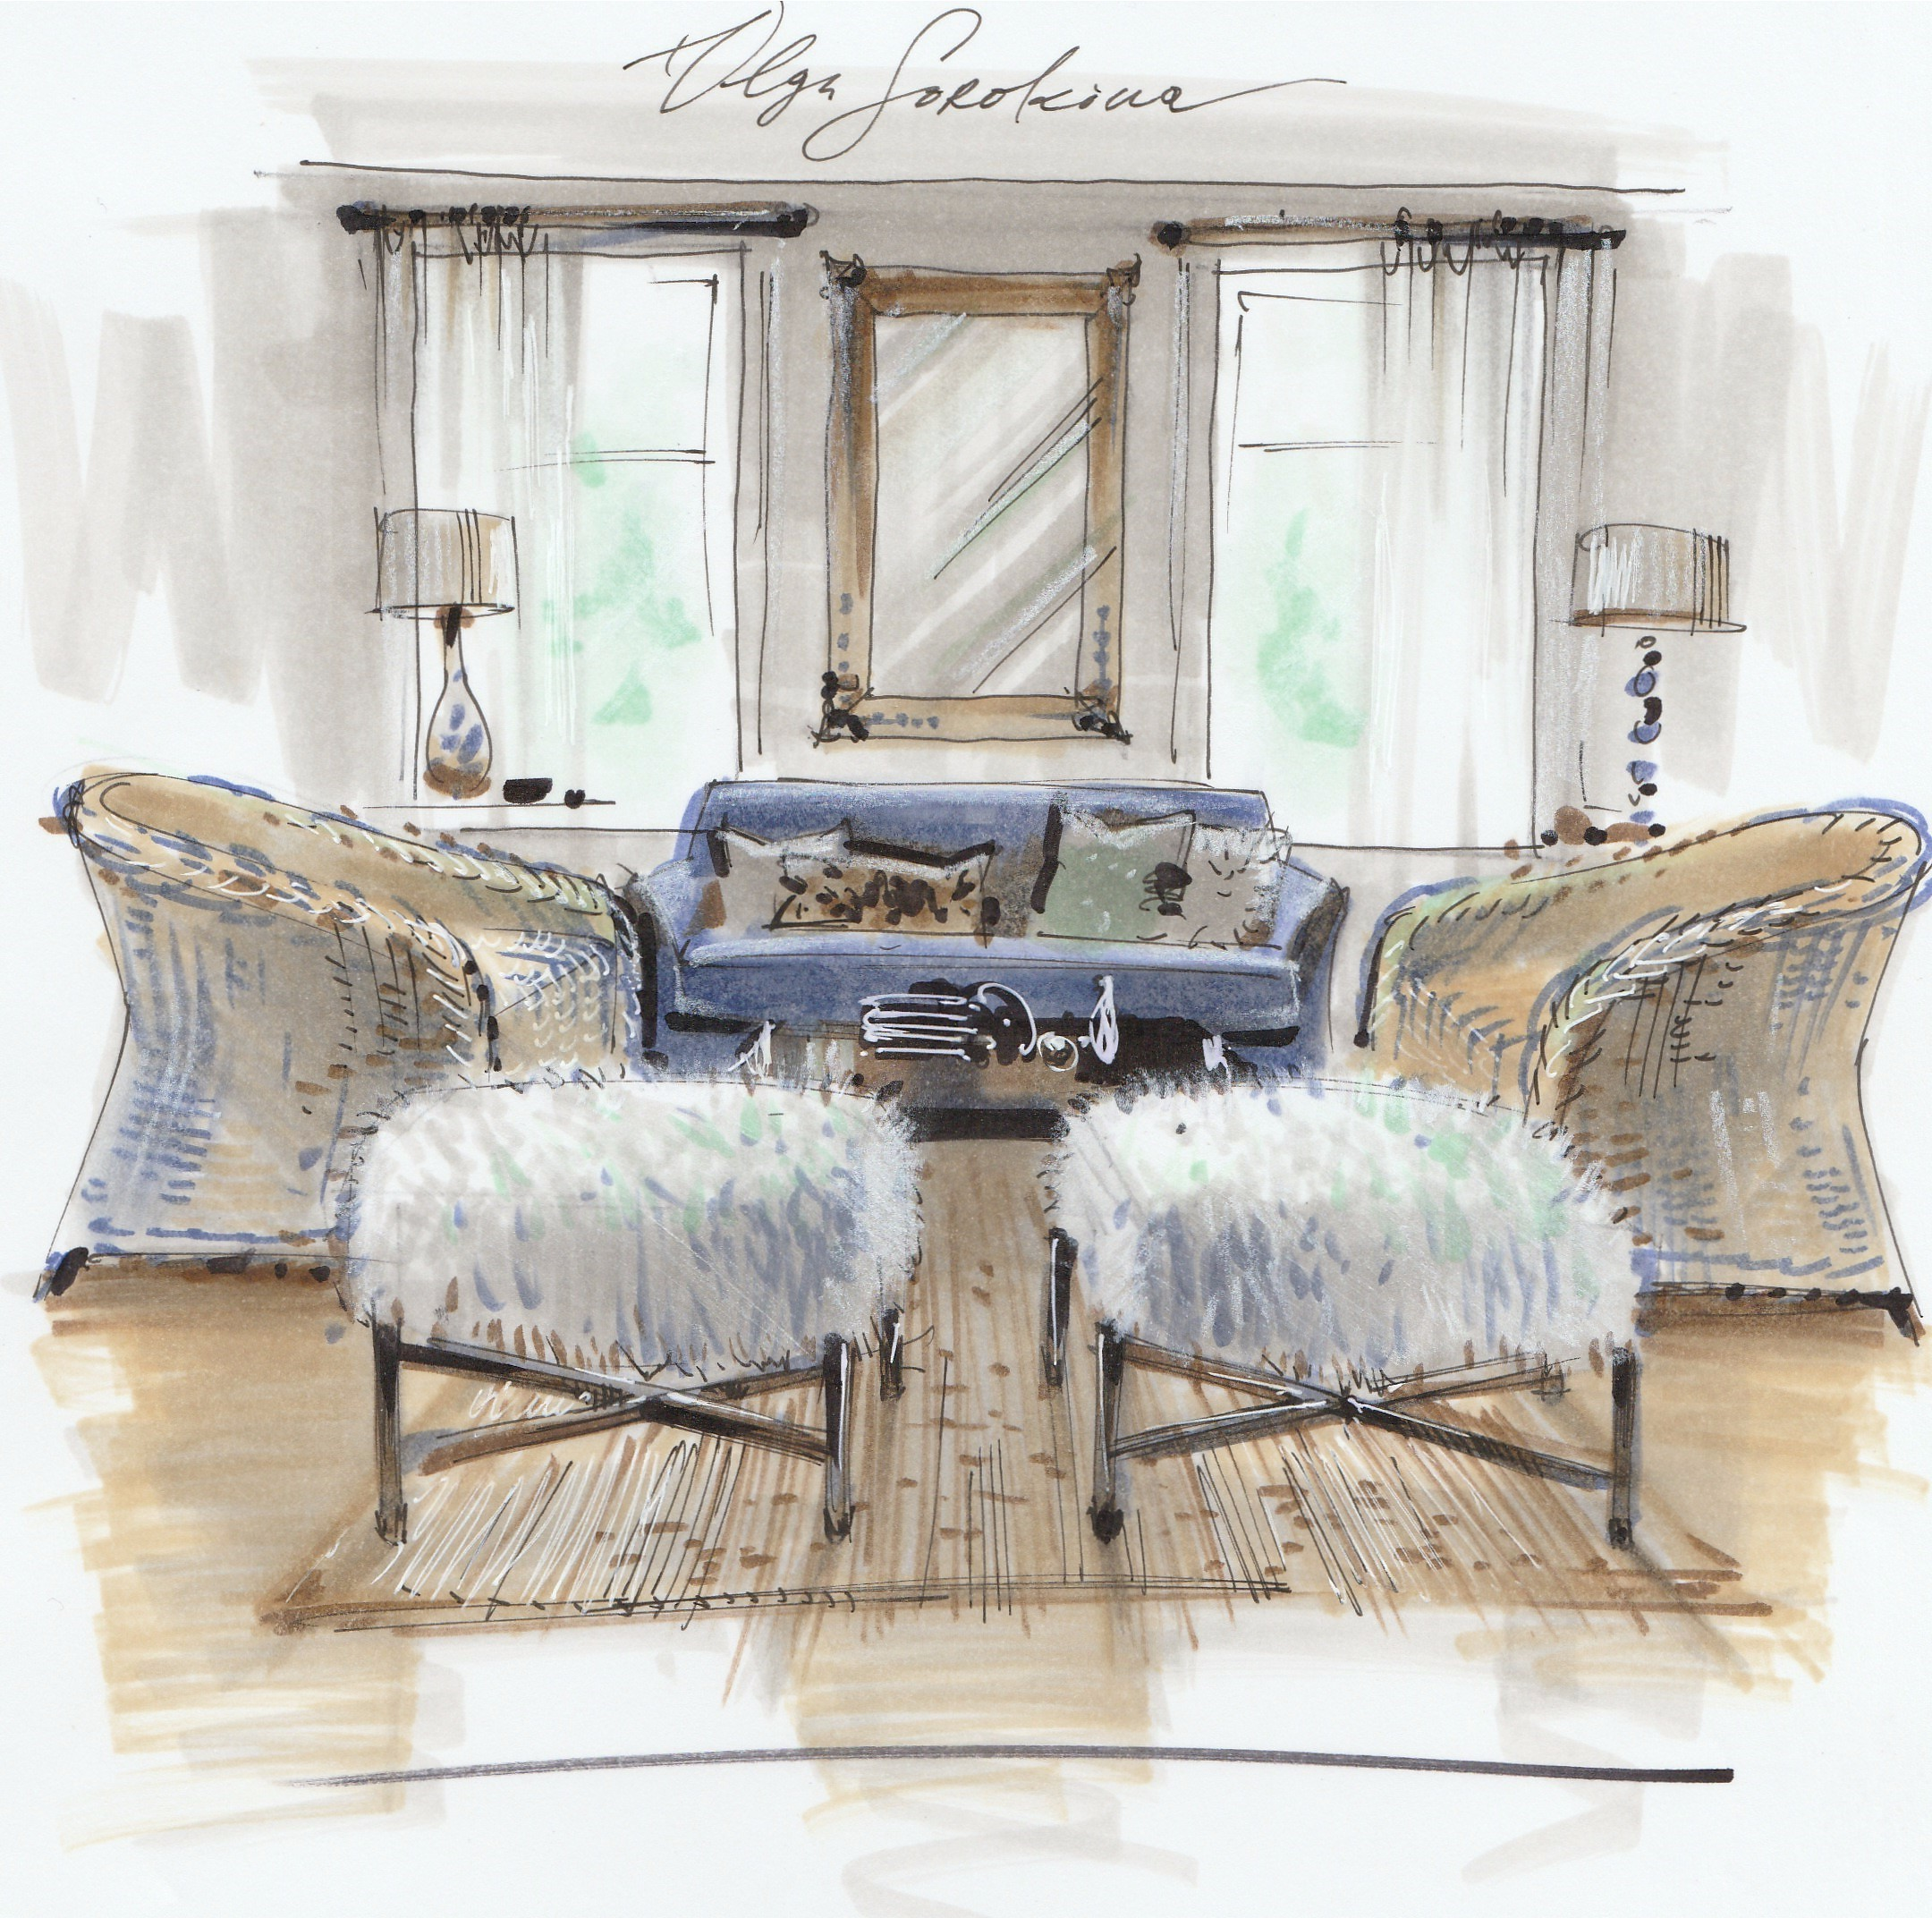 ... Sketch Room Interior Sketching With Markers Advanced Level Online Of ... & Sketch Room - Dining Room Sketch 6 Great Living Room Sketch Plan ...